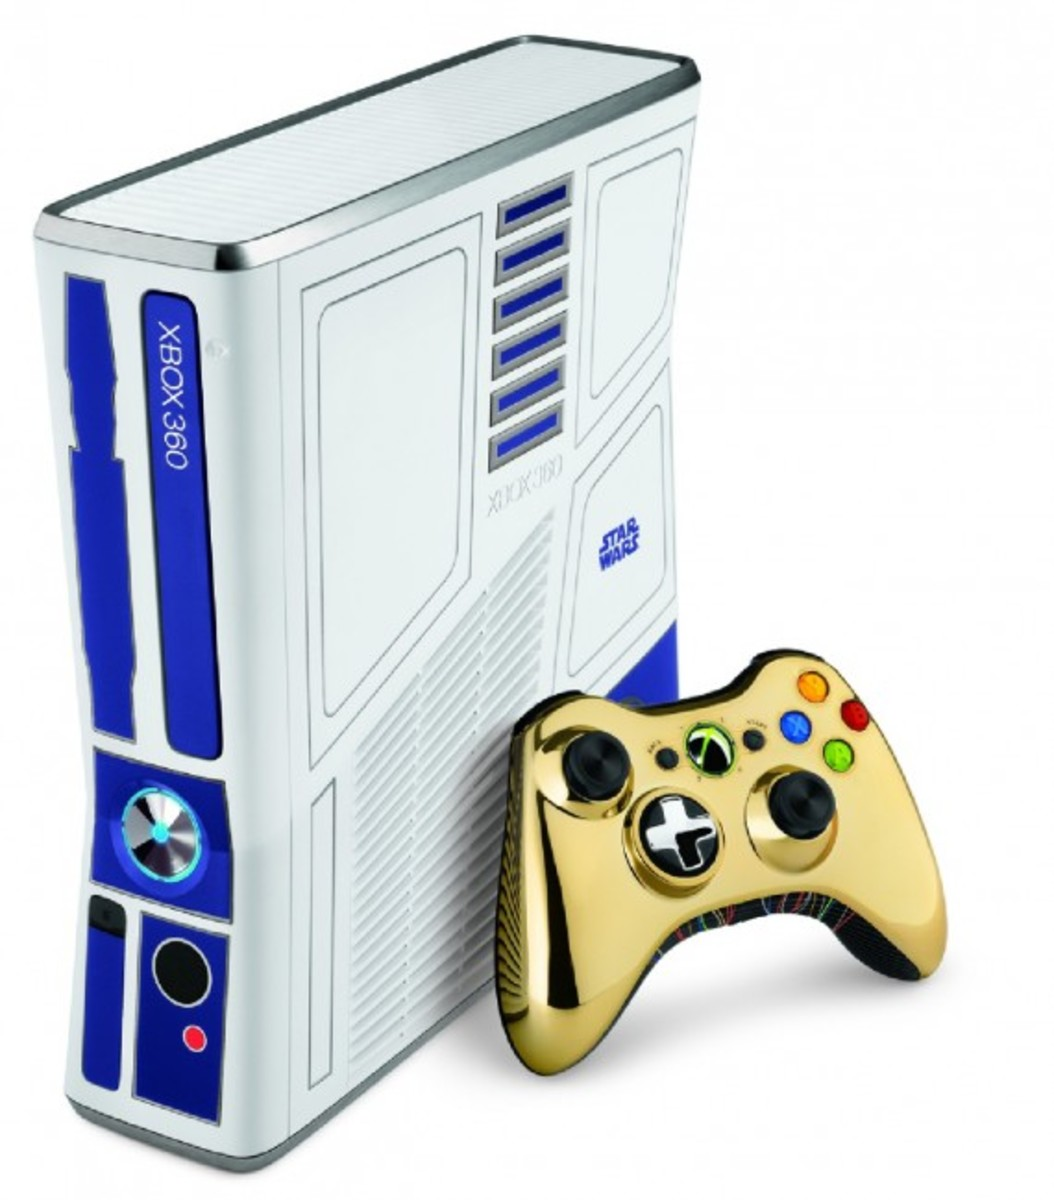 star-wars-xbox-360-kinect-r2d2-c3po-bundle-03